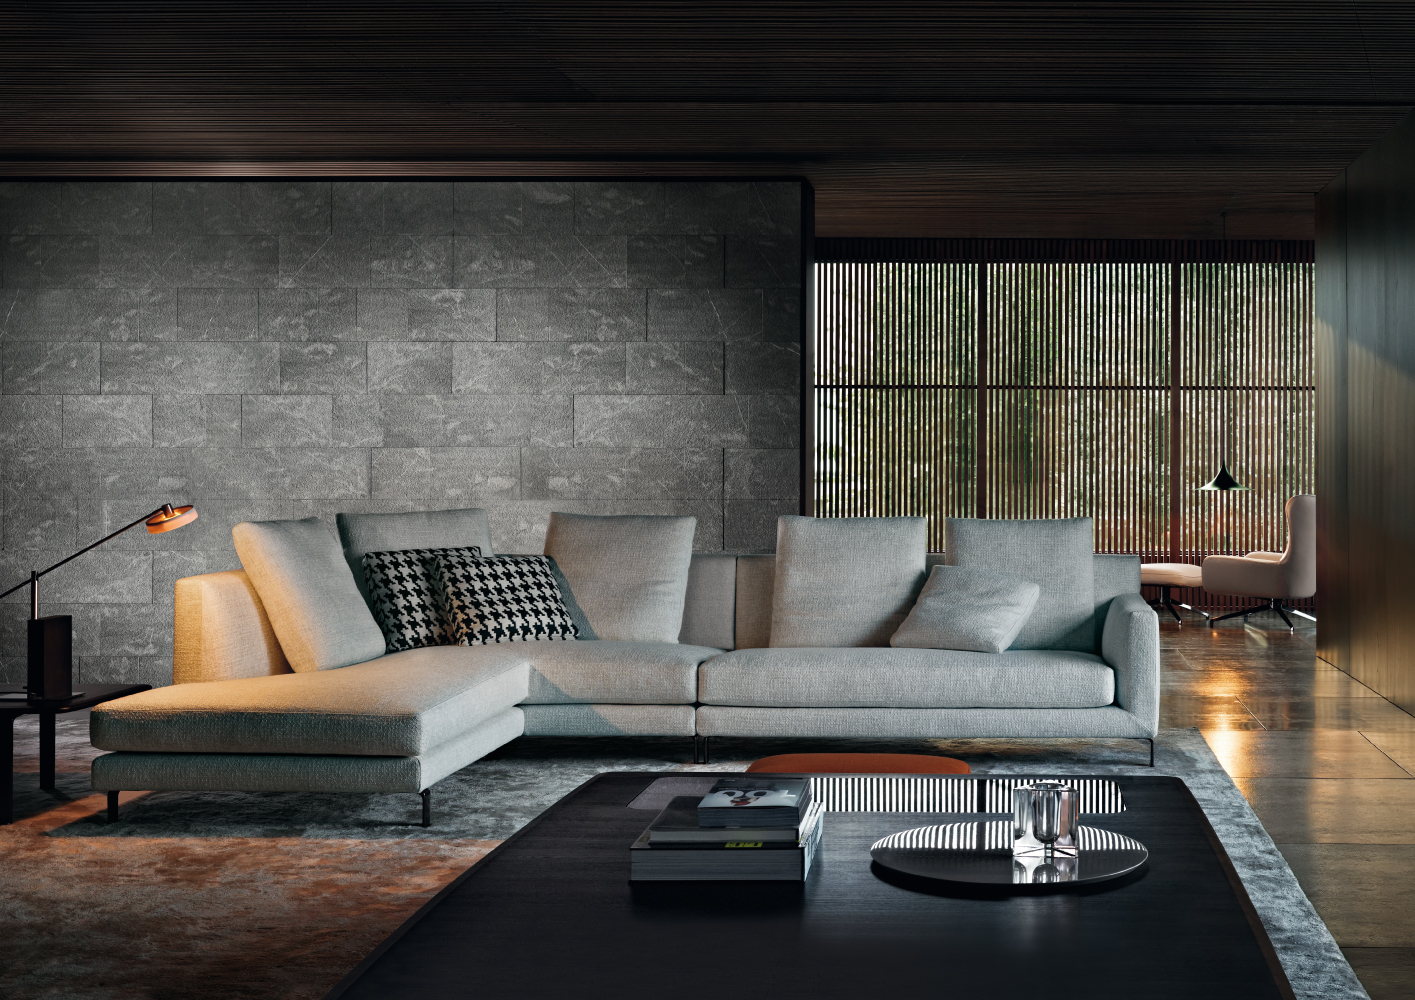 High Definition Minotti Luxury Sofas Now In Lebanon